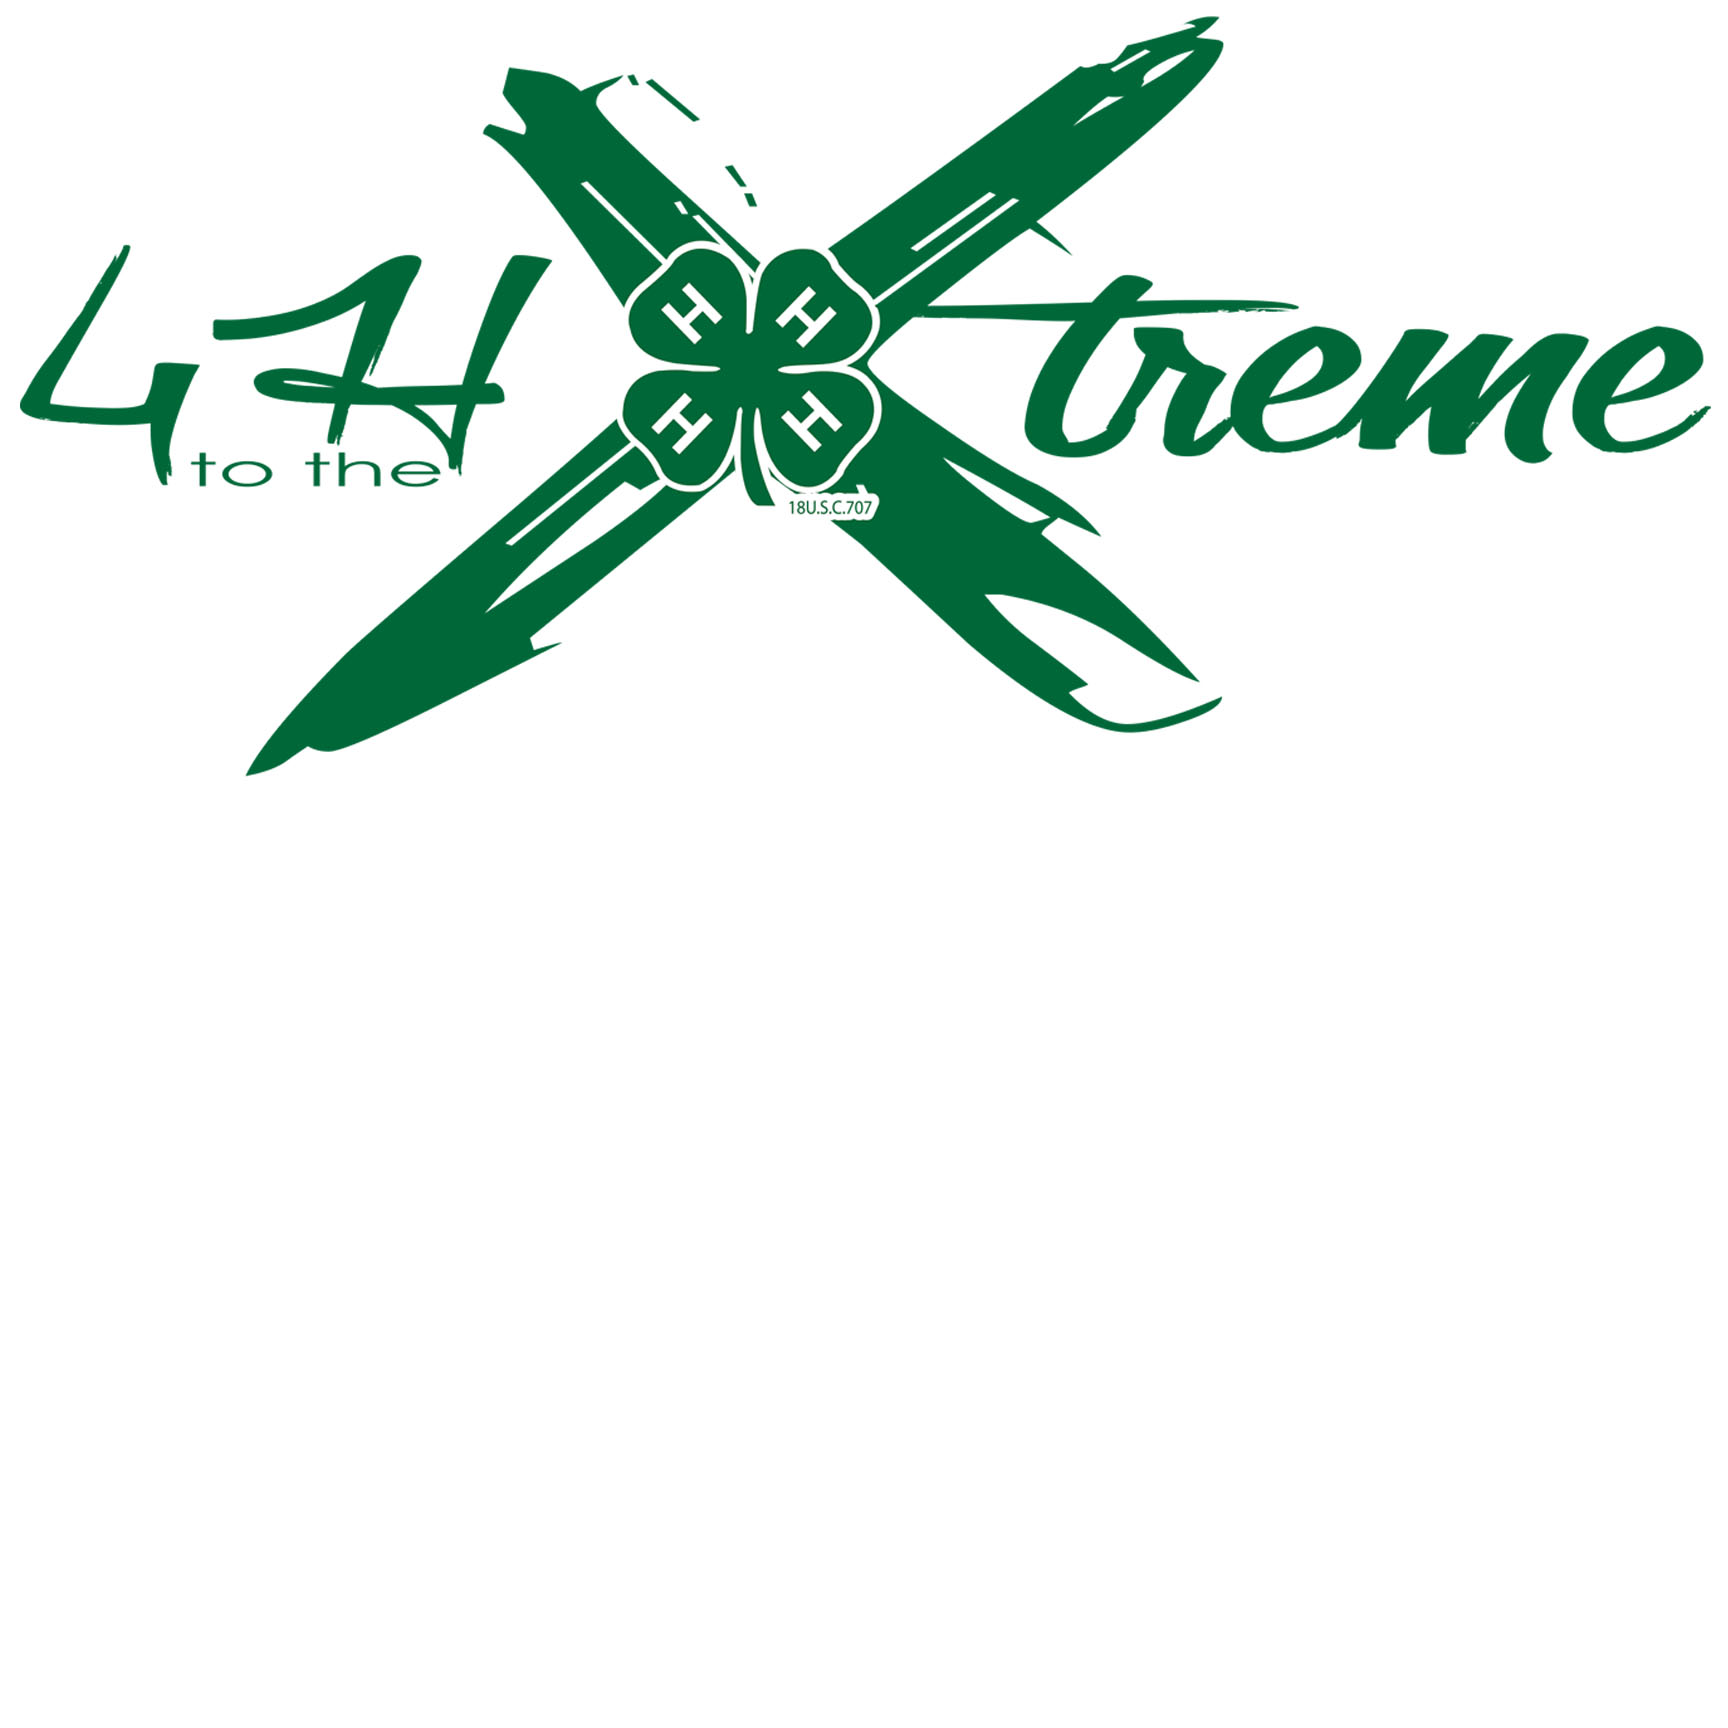 4-H_Extreme_8-4-16